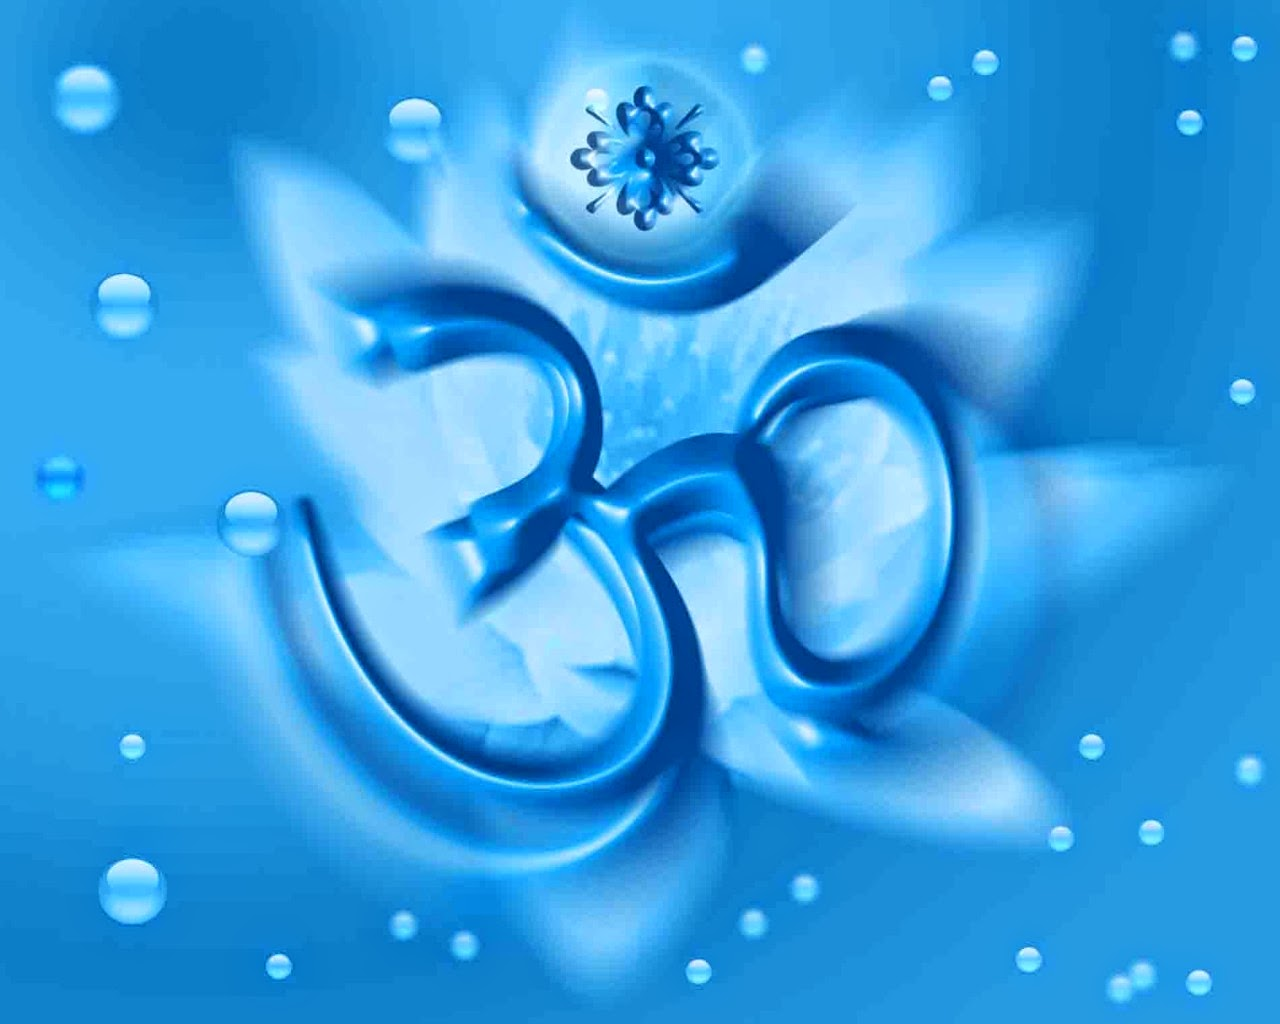 Wallpapers Of Om Symbol 24 Wallpapers Hd Wallpapers